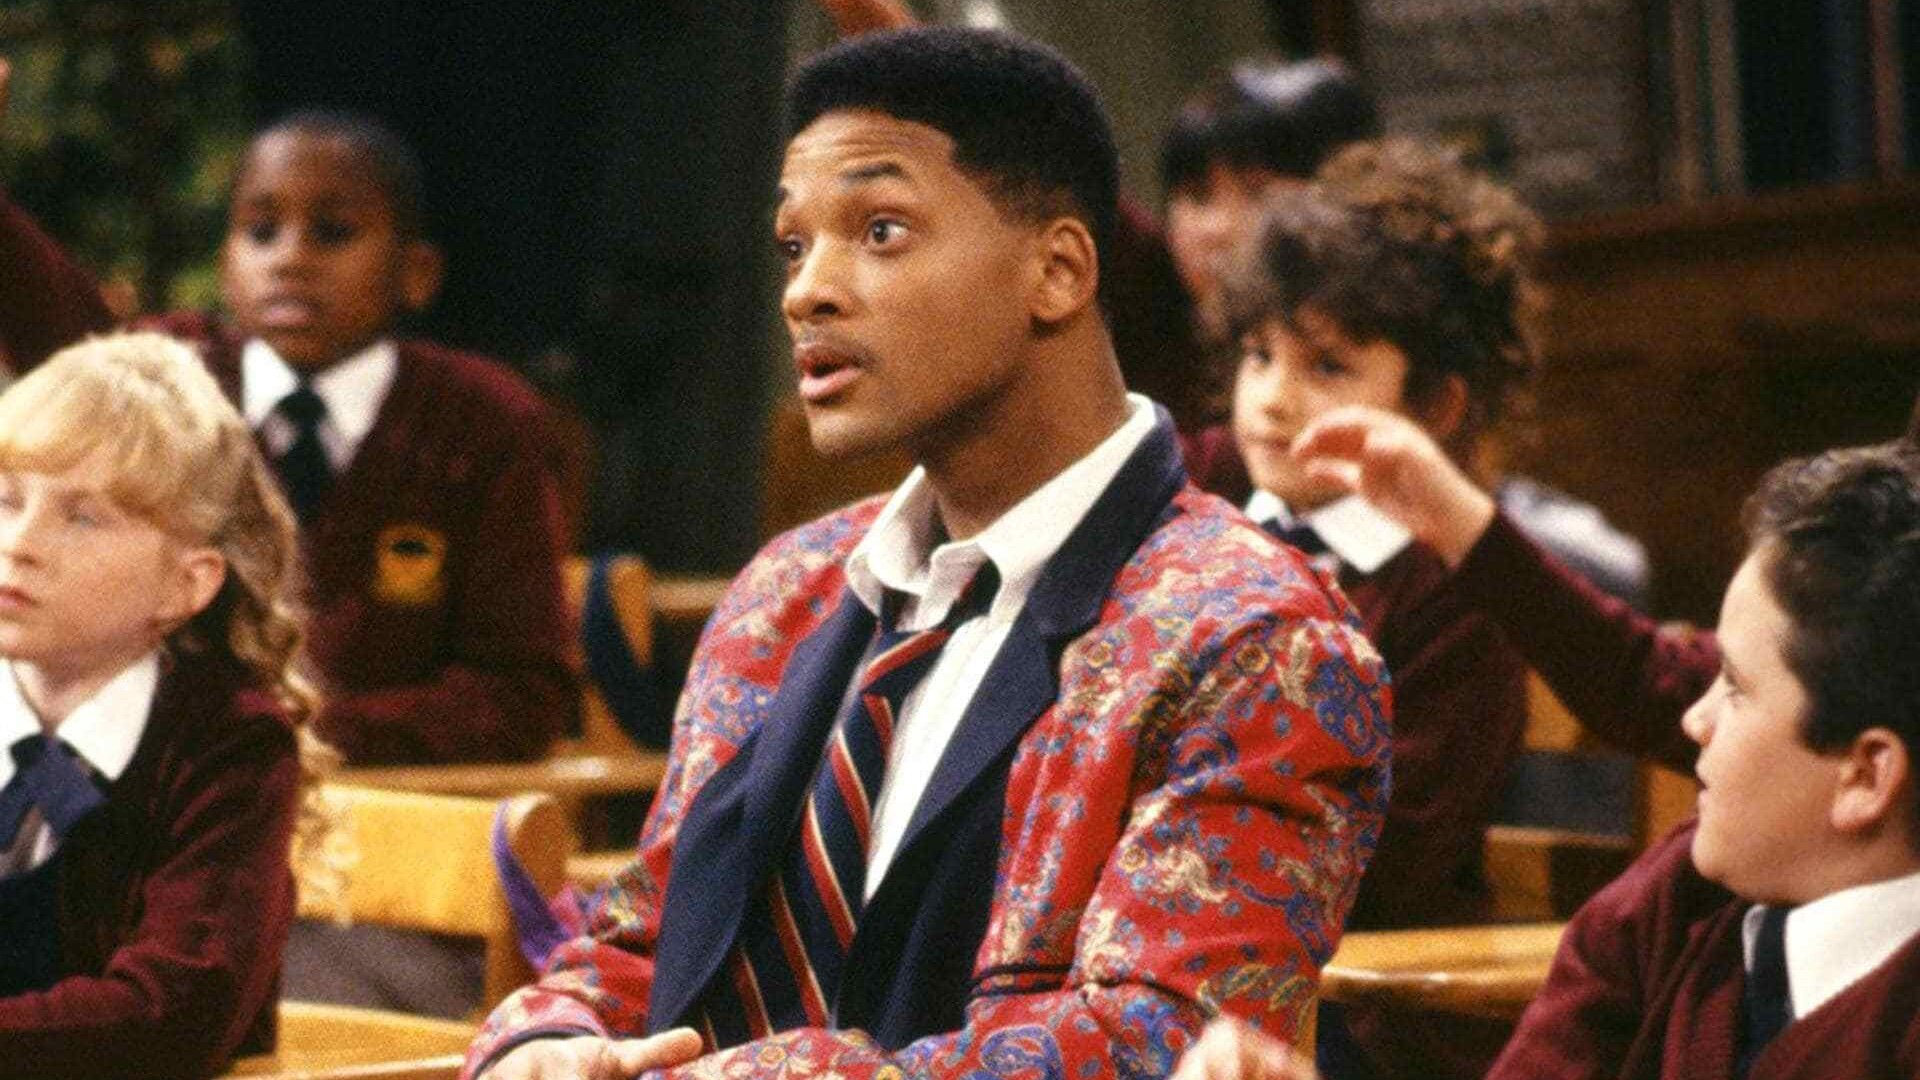 will-smith-is-developing-a-fresh-prince-of-bel-air-spin-off-series-social.jpg